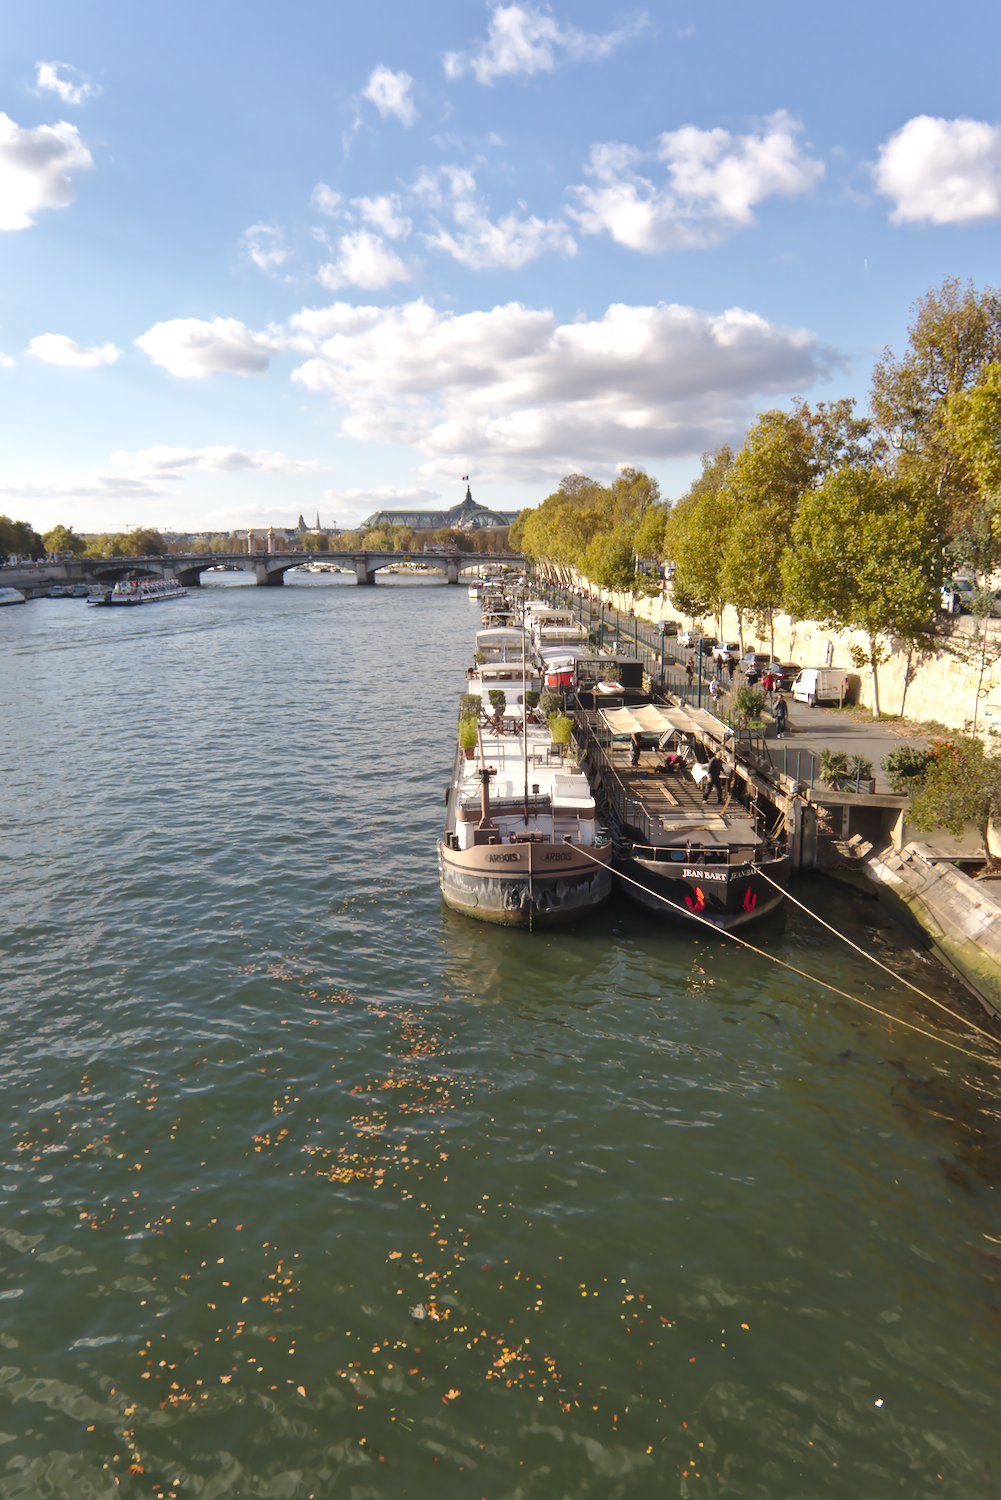 River boats on the Seine